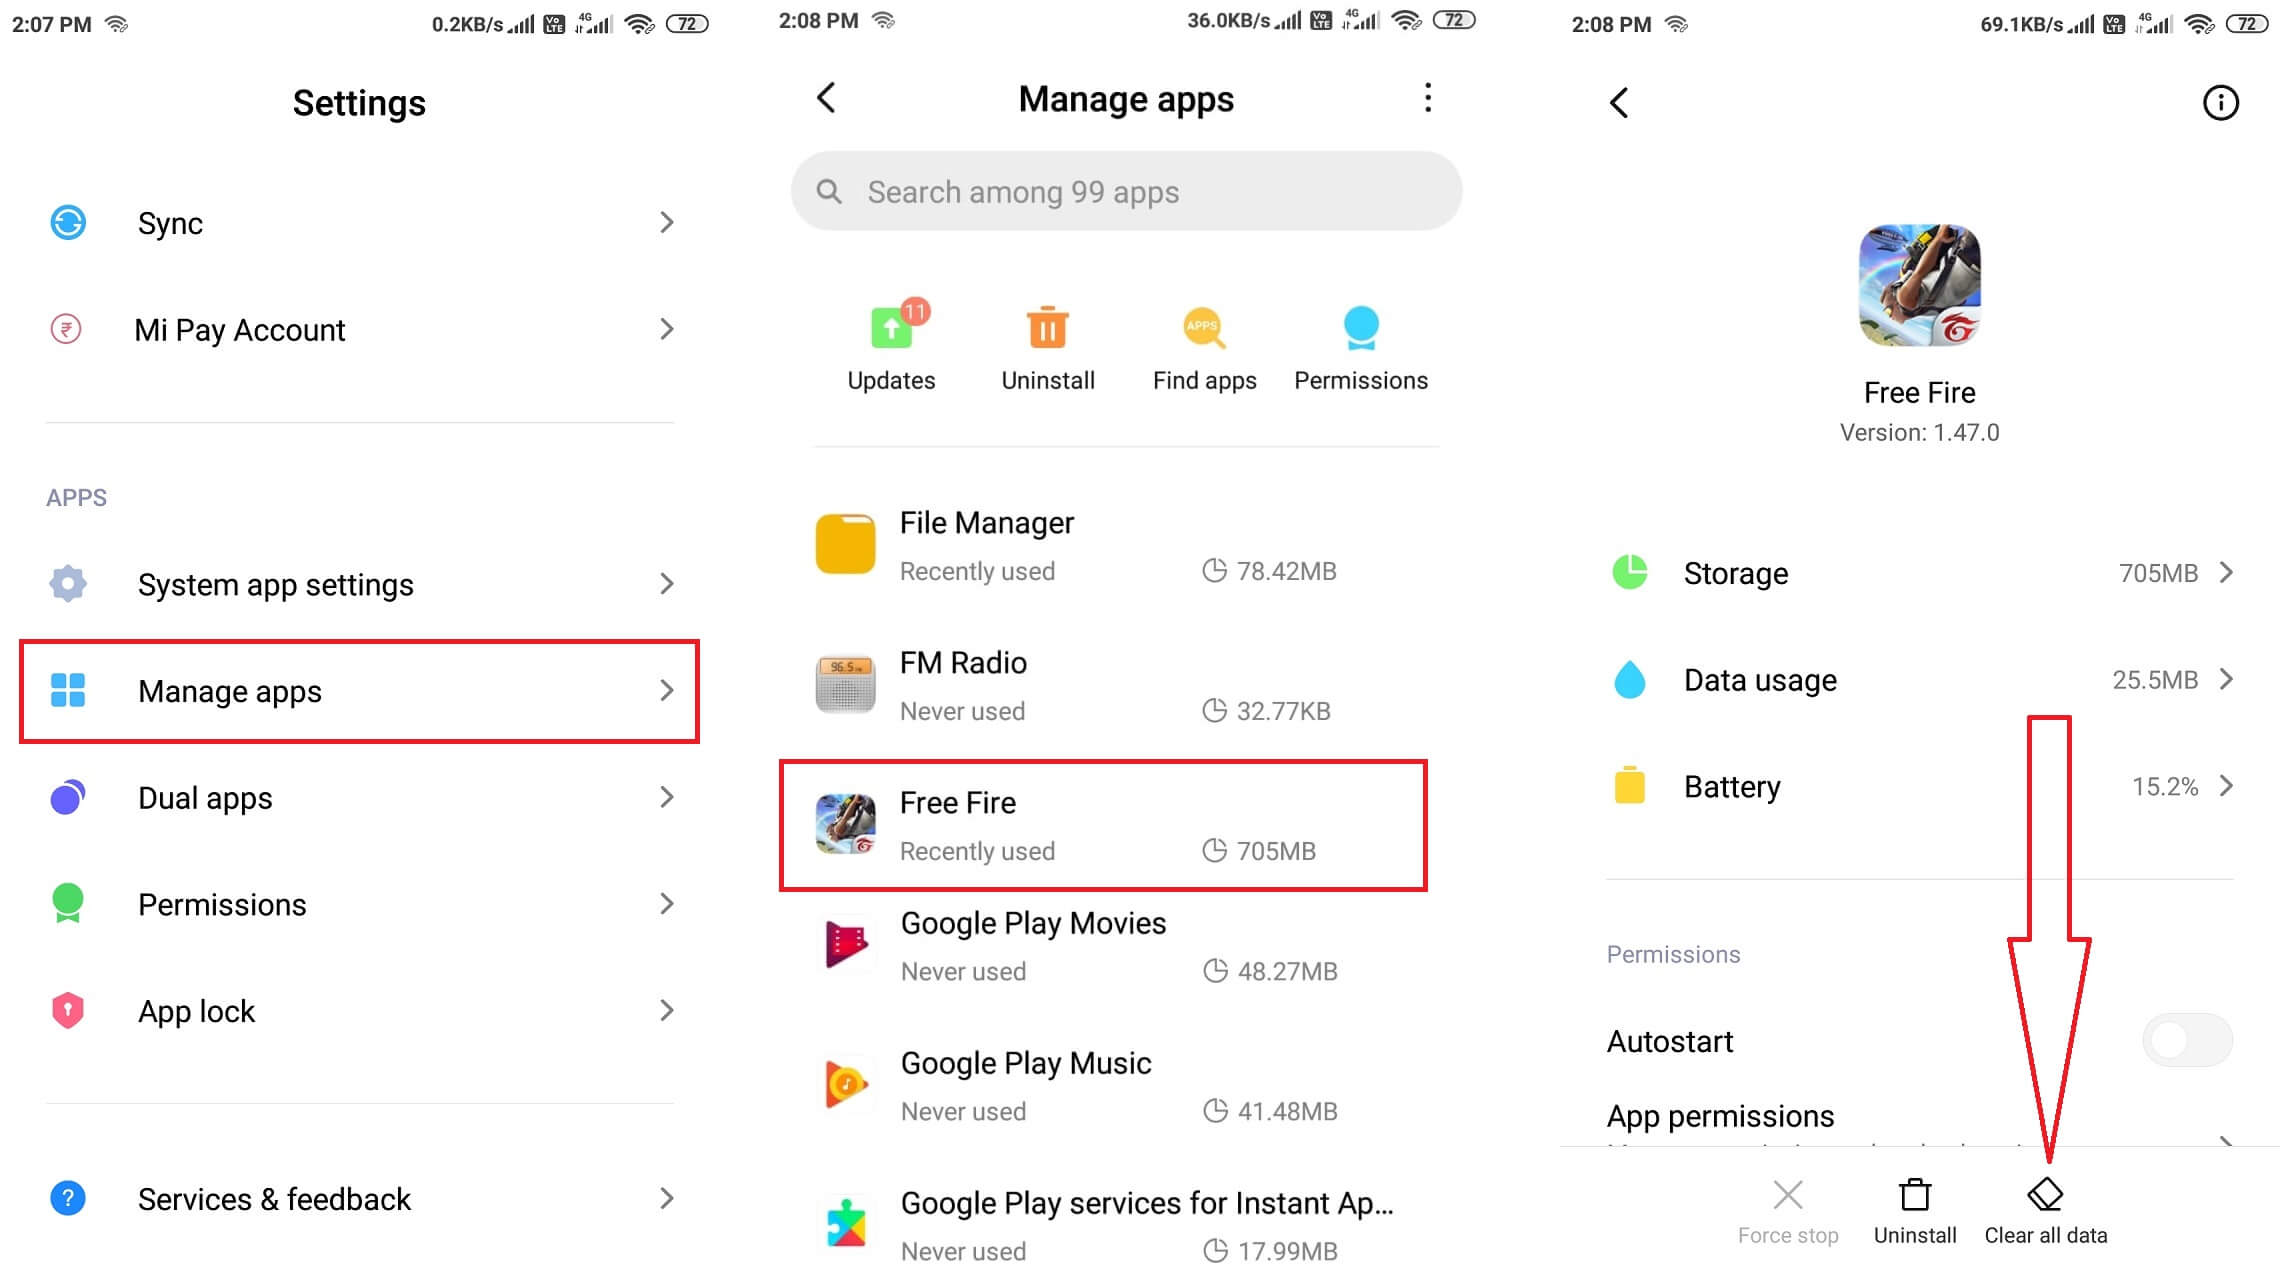 How To Delete A Guest Account In Free Fire